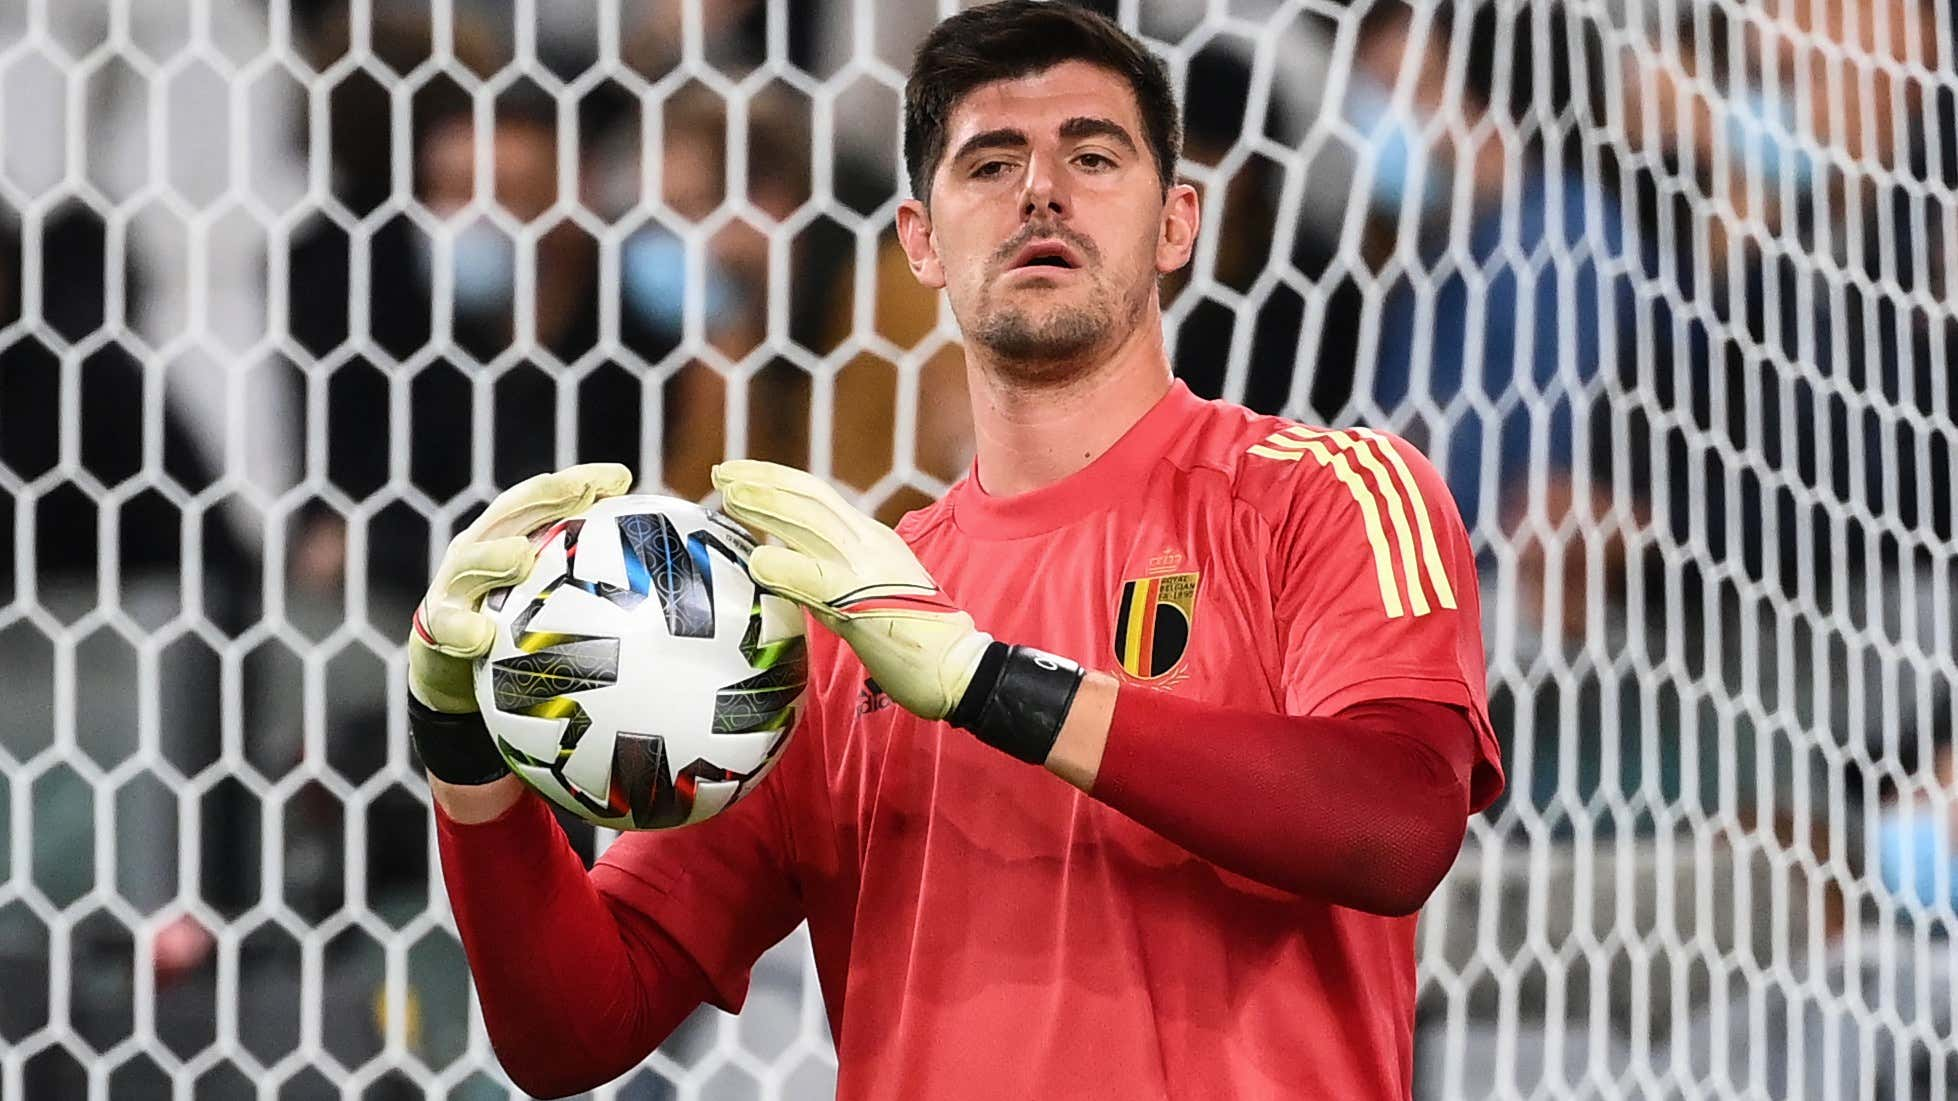 Courtois' rant against UEFA and FIFA